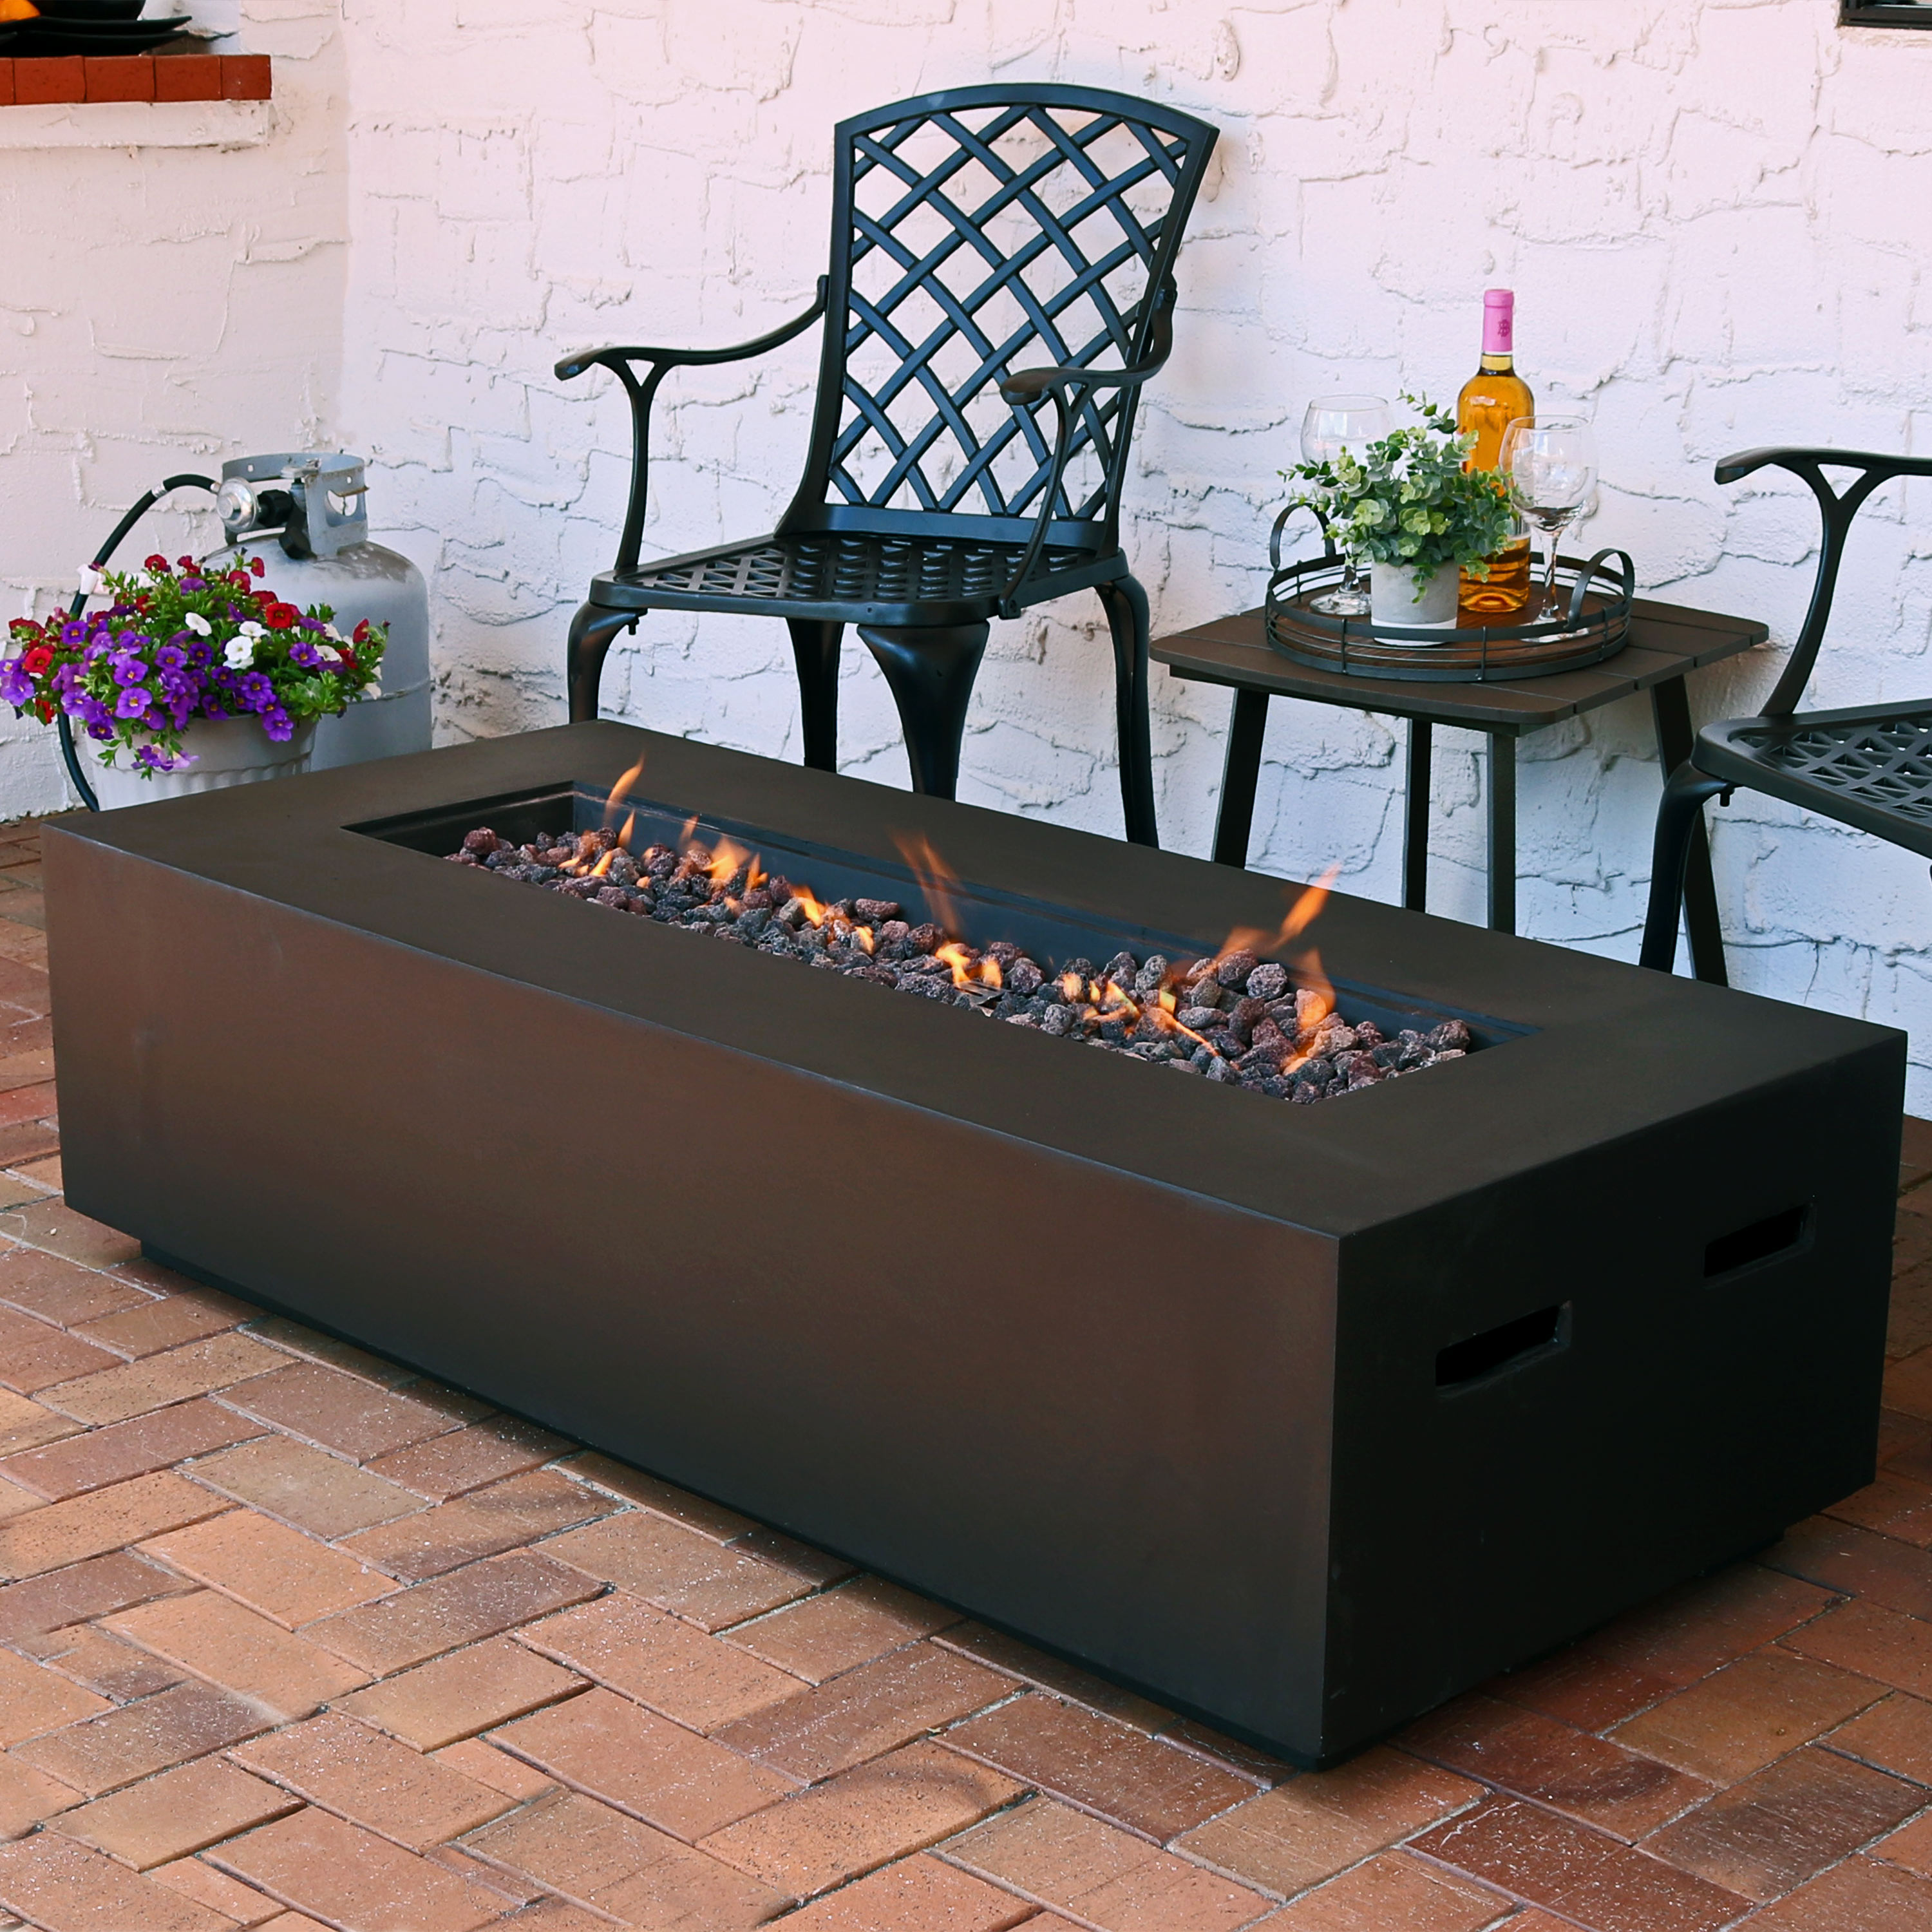 Sunnydaze Outdoor Rectangular Propane Gas Firepit Table with Lava Rocks, Brown, 56-Inch by Sunnydaze Decor